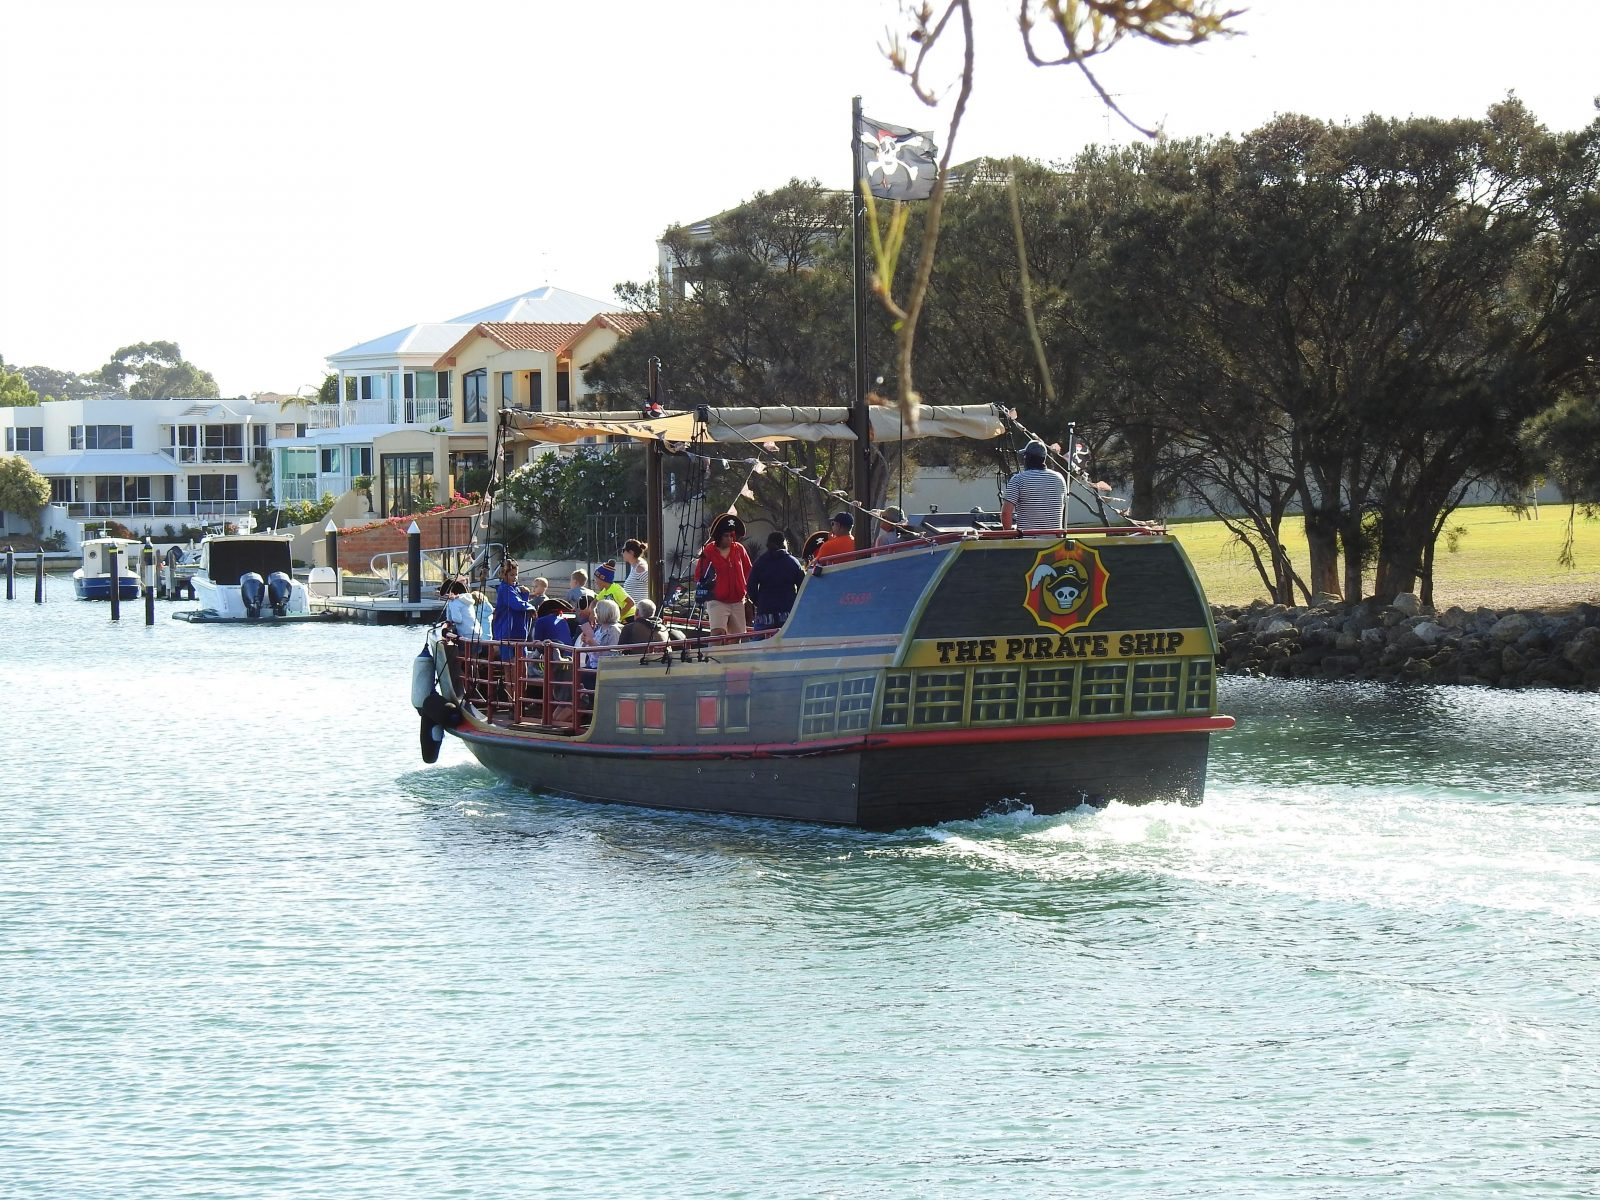 Pirate Ship entering Canals